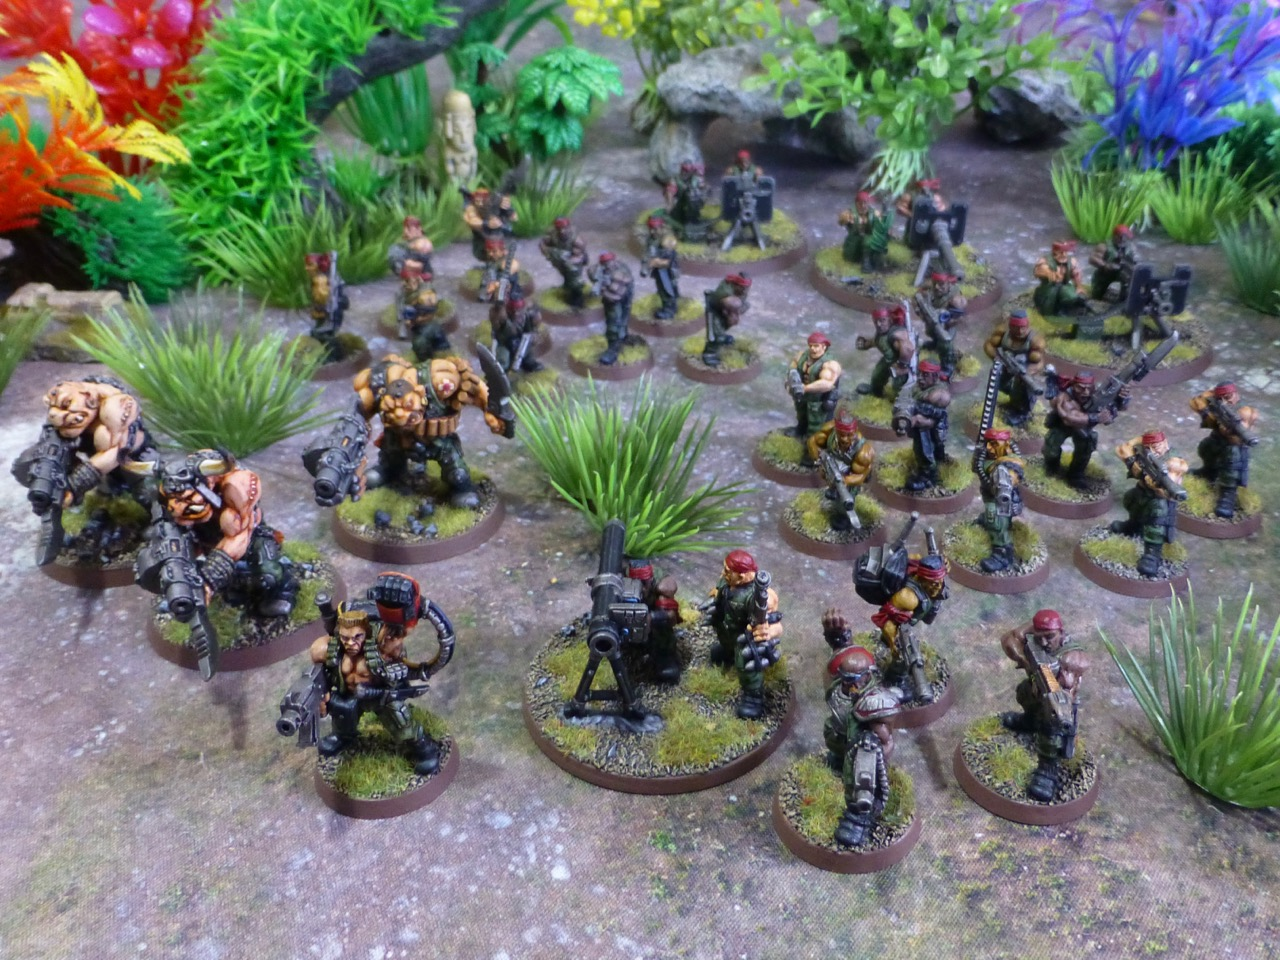 Multiple squads of soldiers in green fatigues among jungle plants